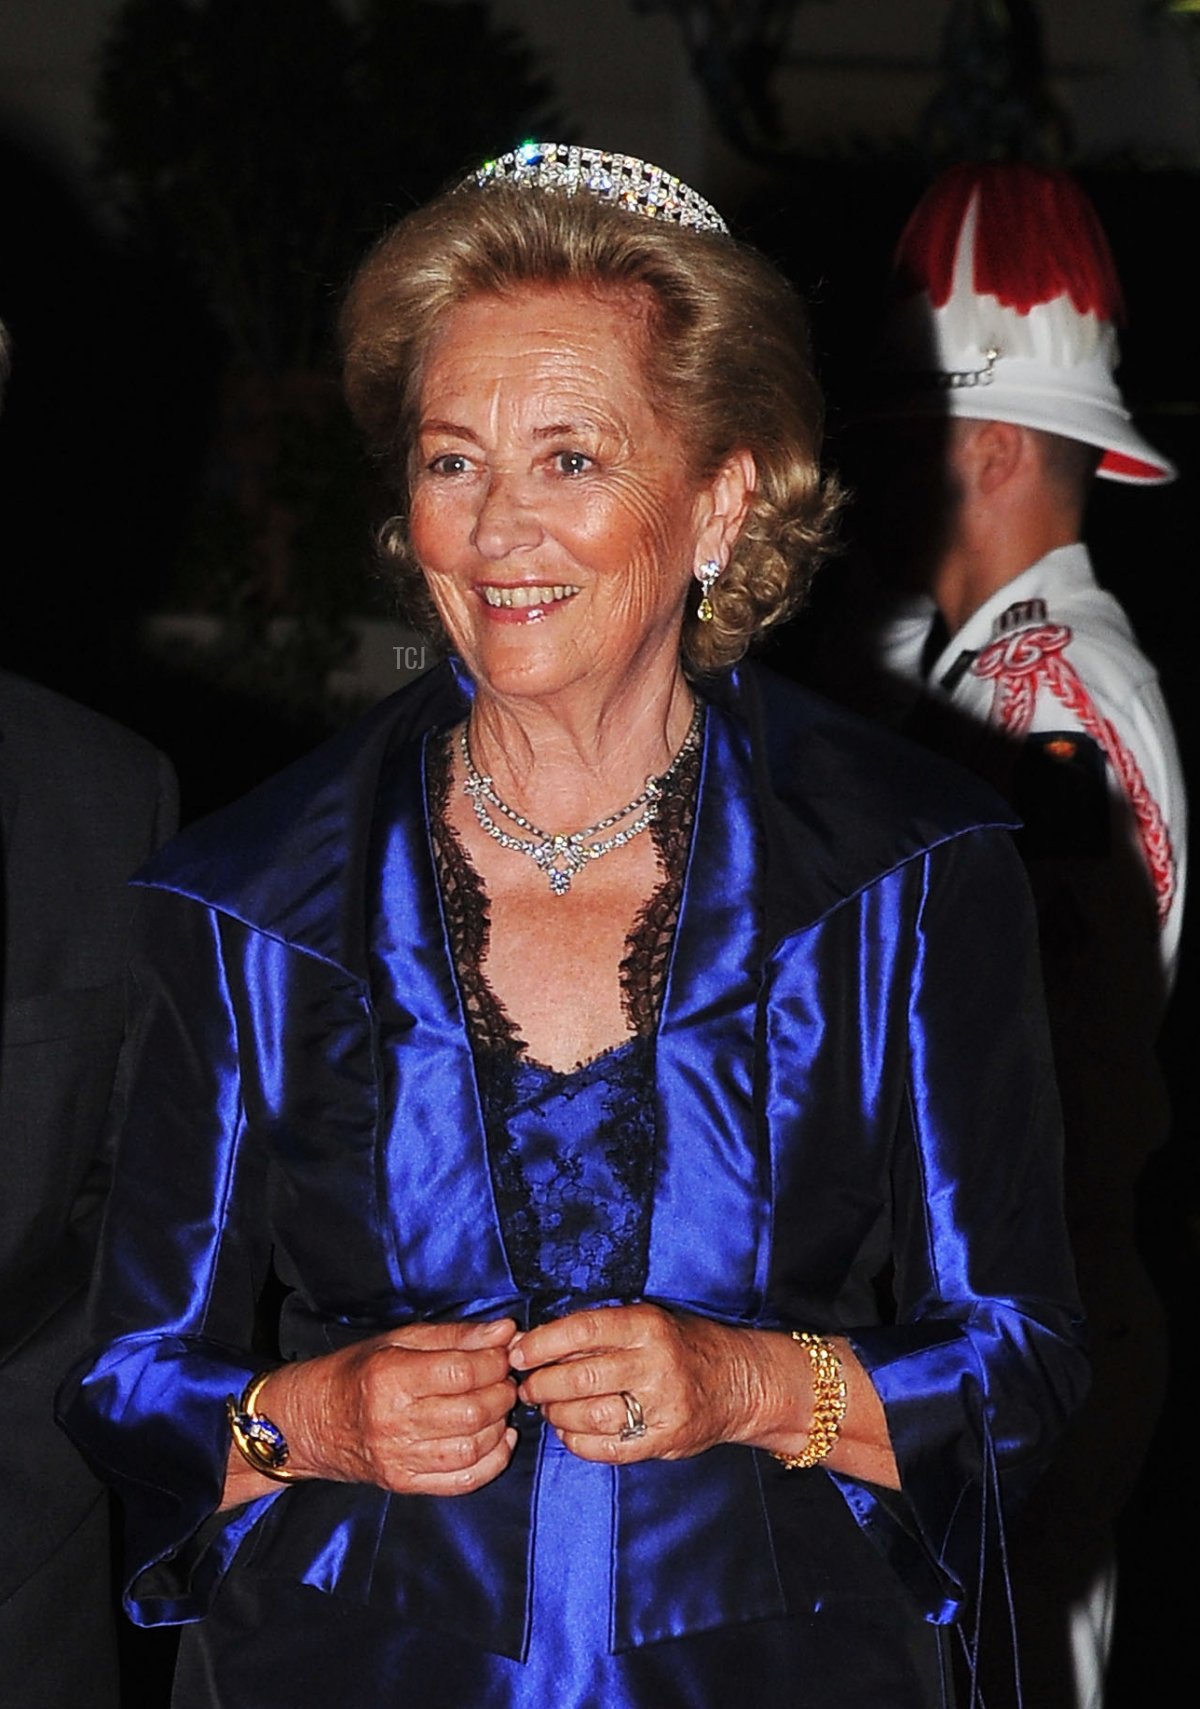 Queen Paola of Belgium attends a dinner at Opera terraces after the religious wedding ceremony of Prince Albert II of Monaco and Princess Charlene of Monaco on July 2, 2011 in Monaco